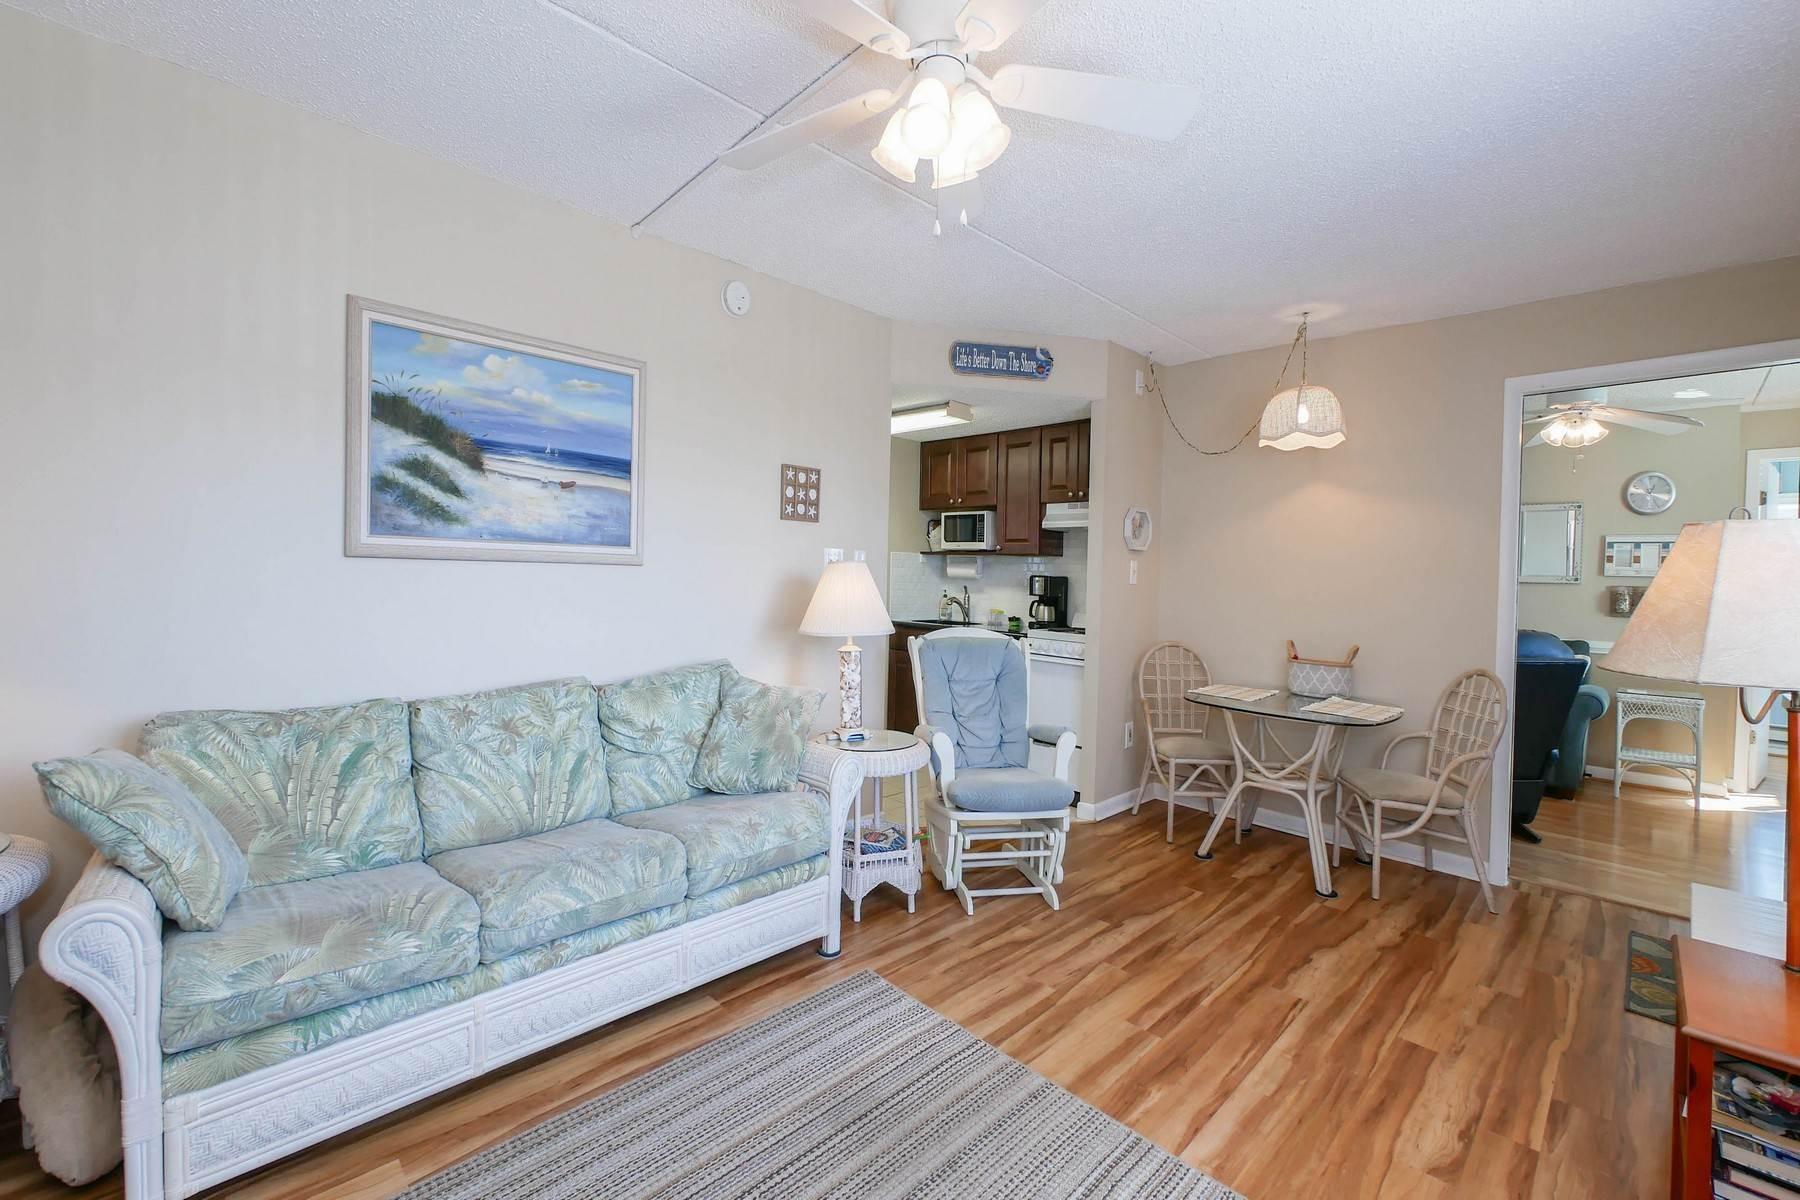 18. Condominiums for Sale at Boardwalk Best Buy 831 Atlantic Ave, #115-116 Ocean City, New Jersey 08226 United States